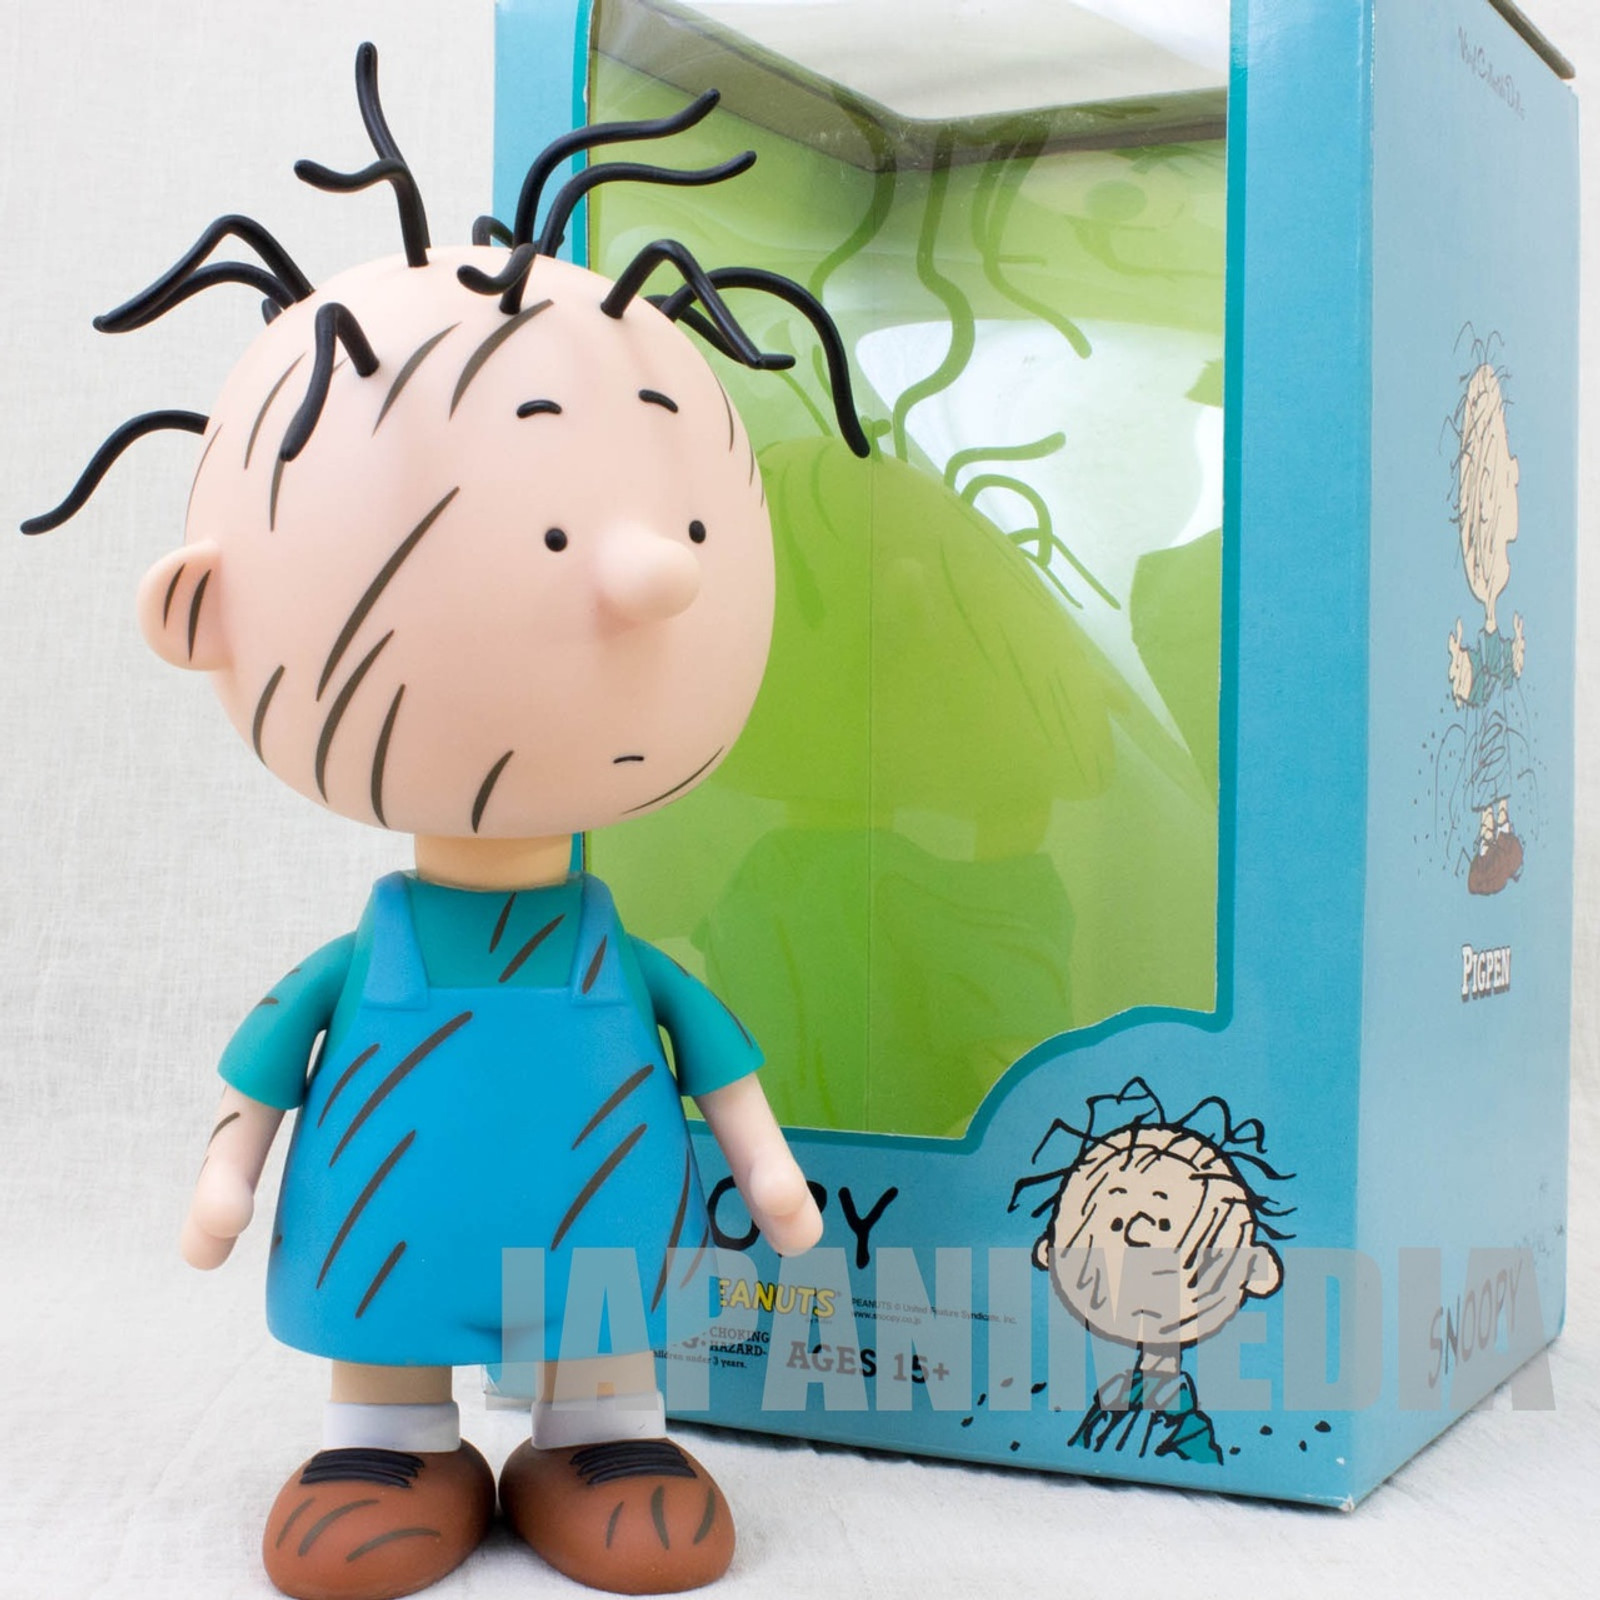 Peanuts Snoopy Pigpen Figure Vinyl Collectible Dolls Medicom Toy JAPAN ANIME